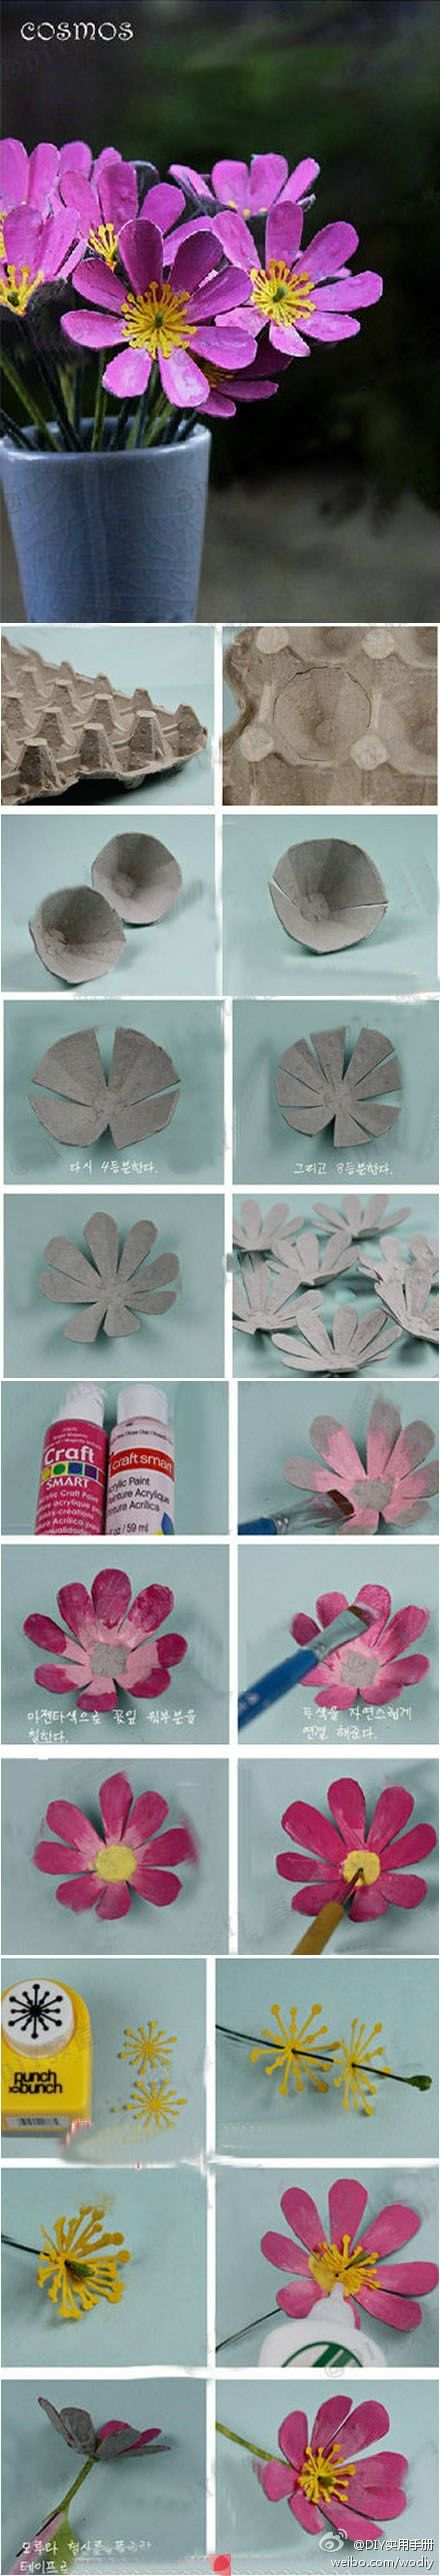 An easier way to reuse egg cartons  for a garland for Nepal. Adult help and  involvement  makes this a creative Family activity